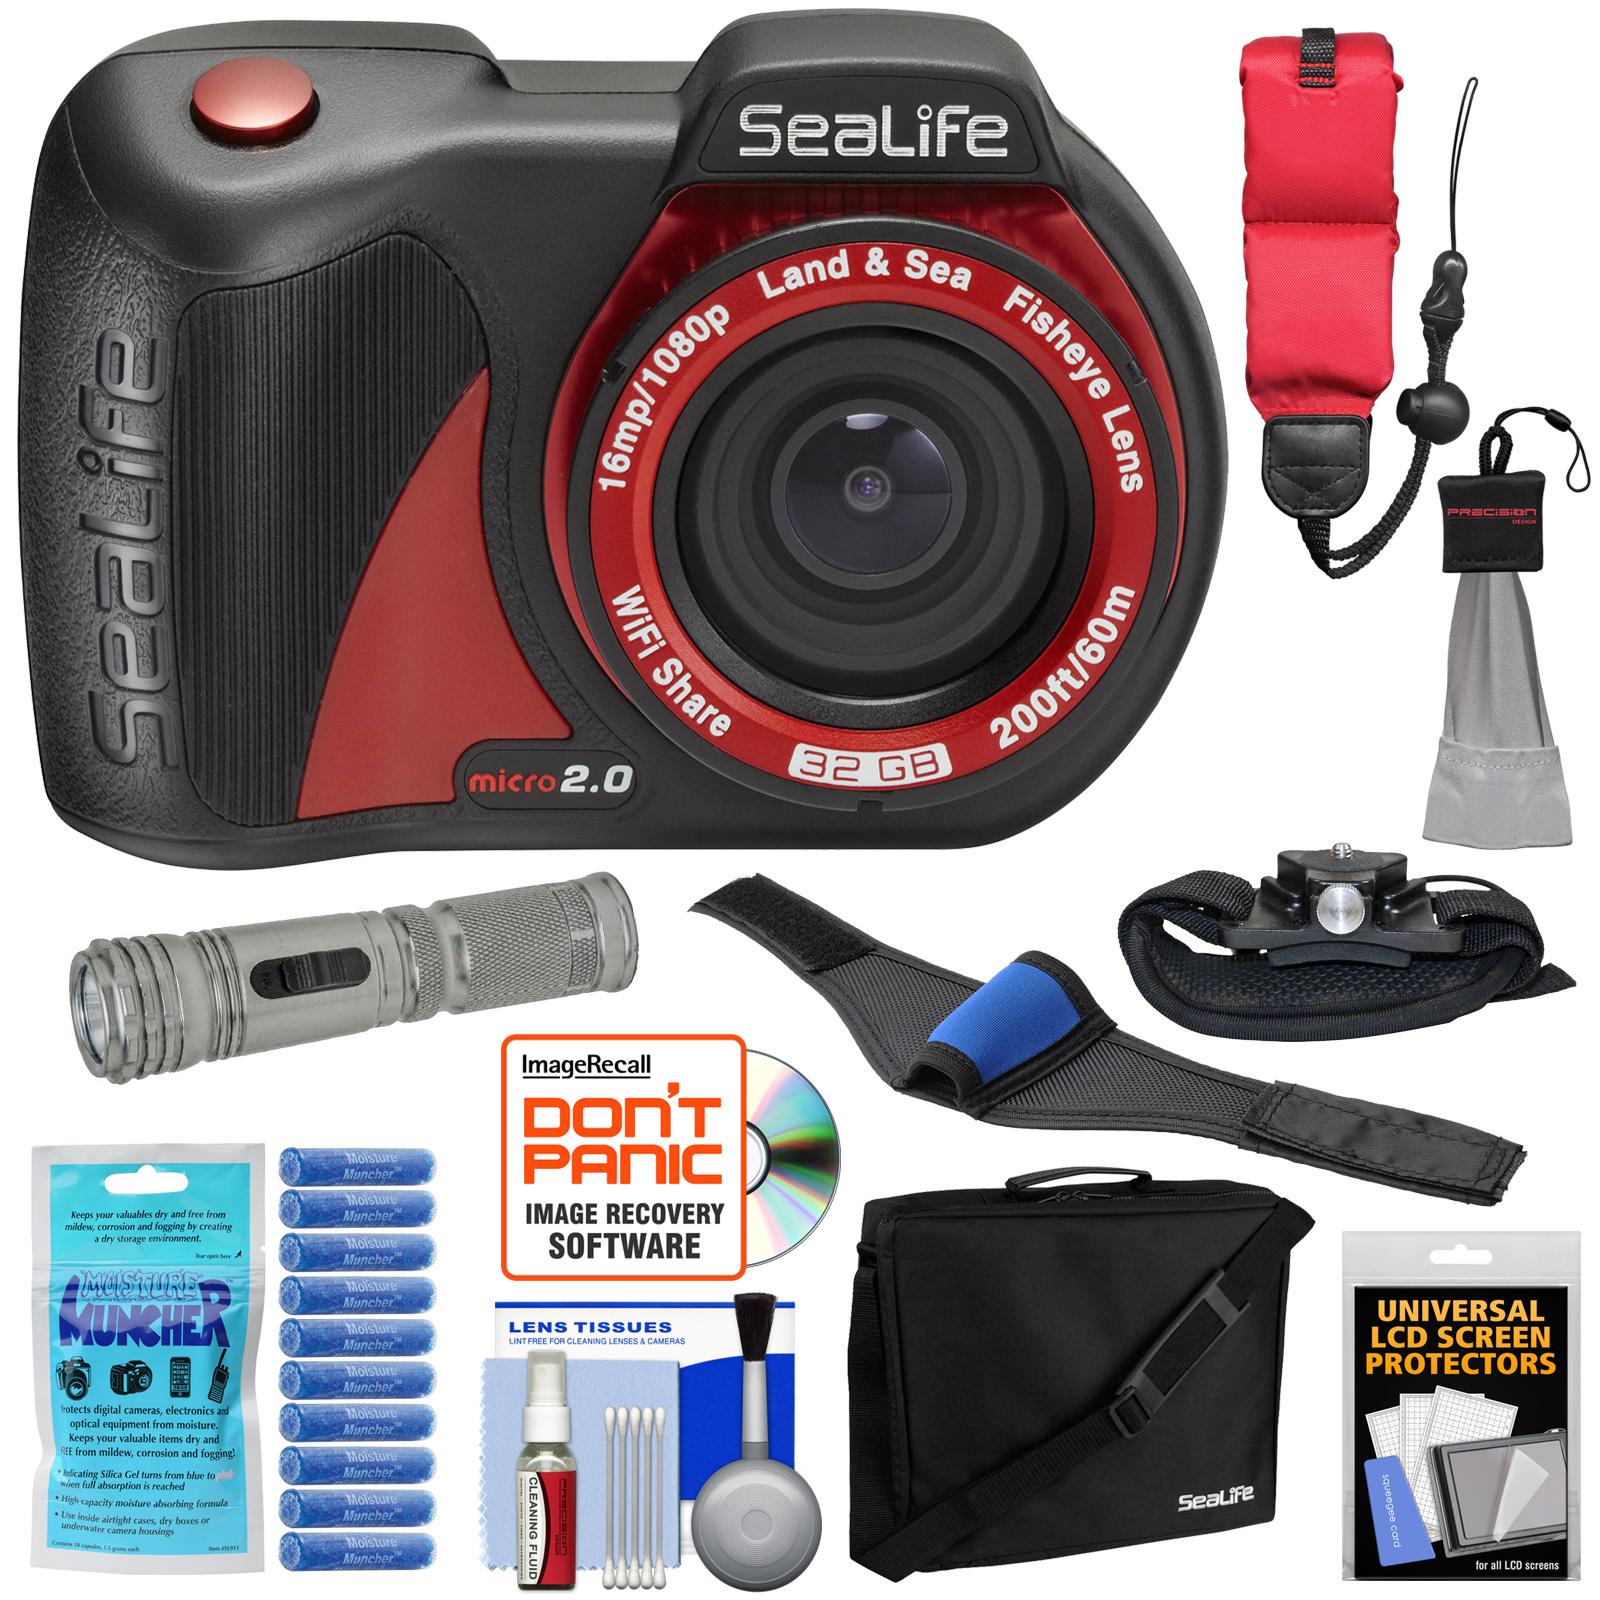 SeaLife Micro 2.0 32GB Wi-Fi Underwater Digital Camera with Case + LED Torch + Straps + Silica Gel + Kit